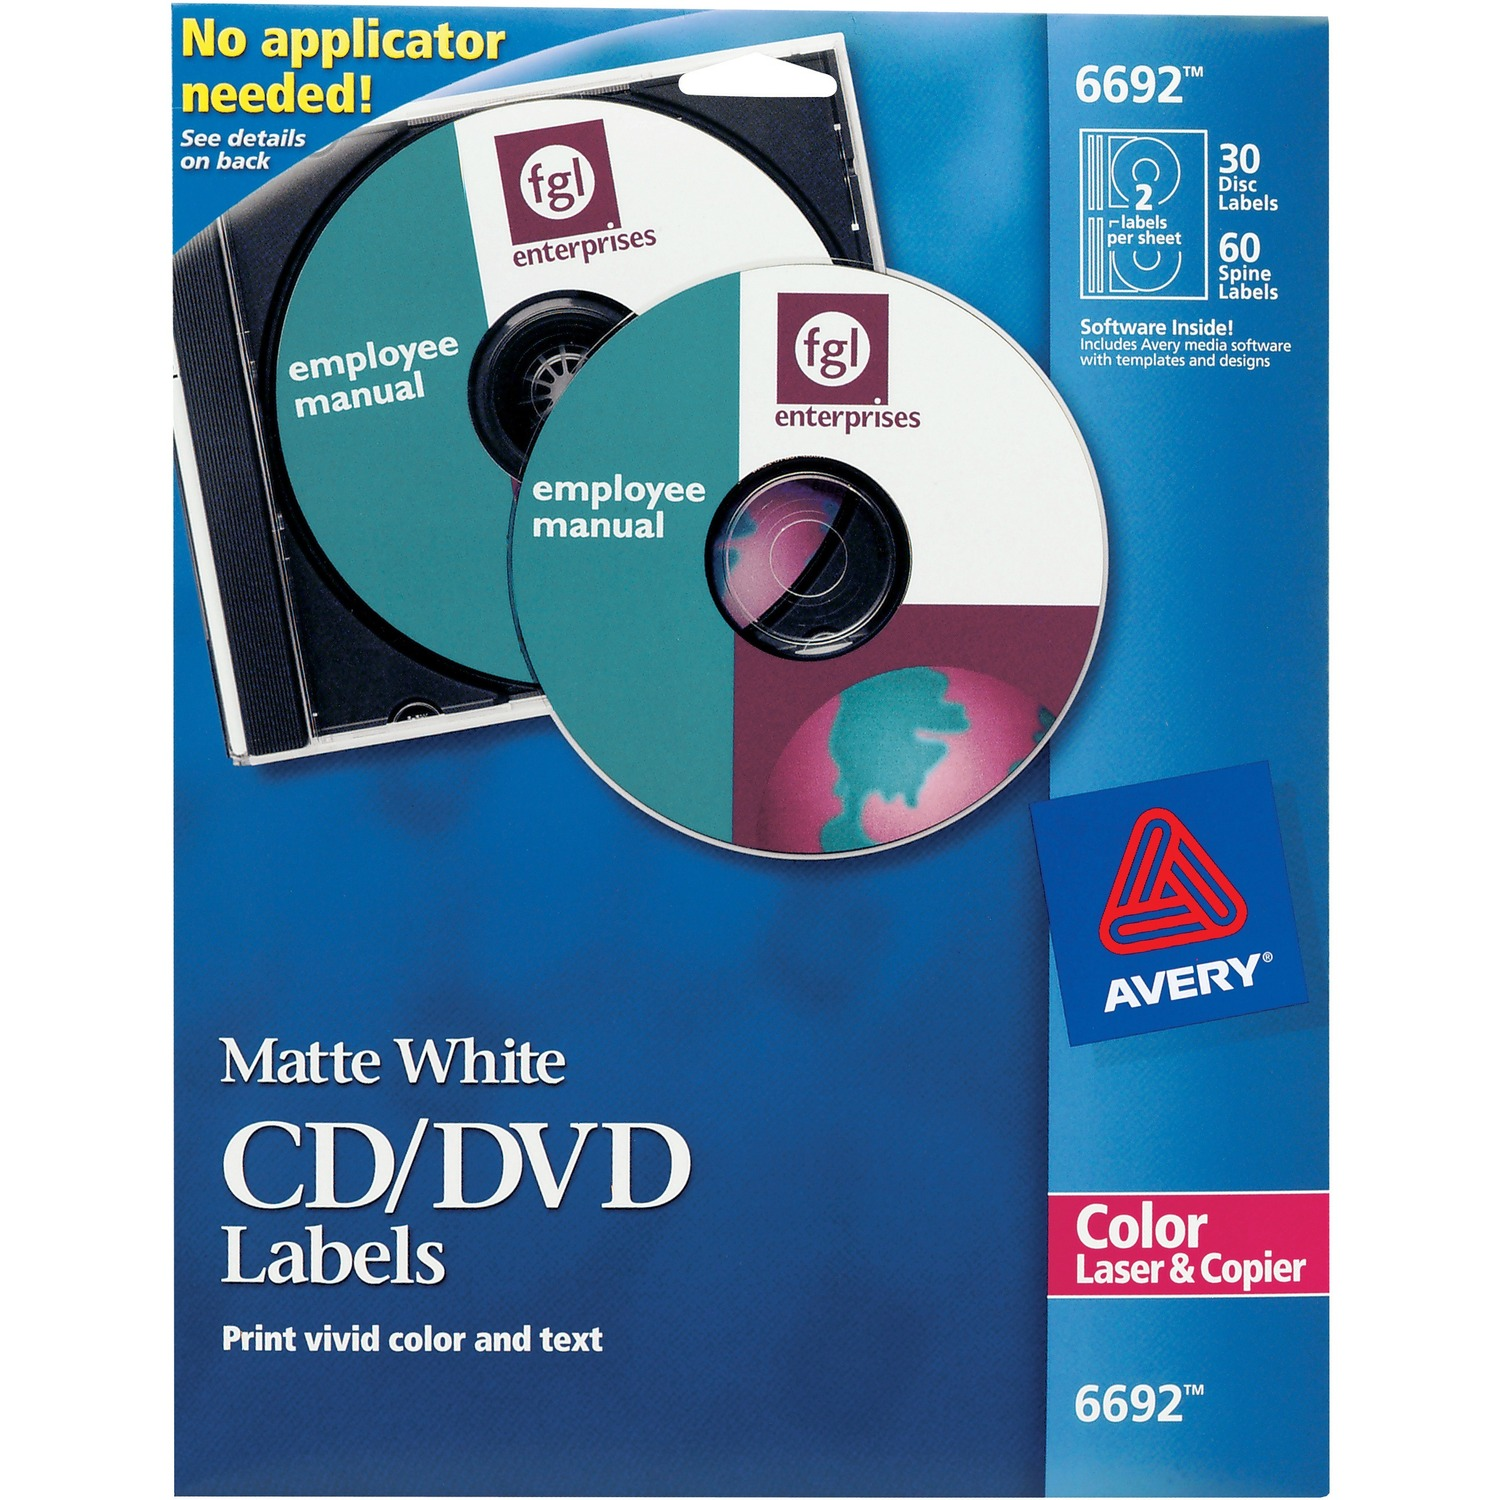 avery u00ae cd  dvd label